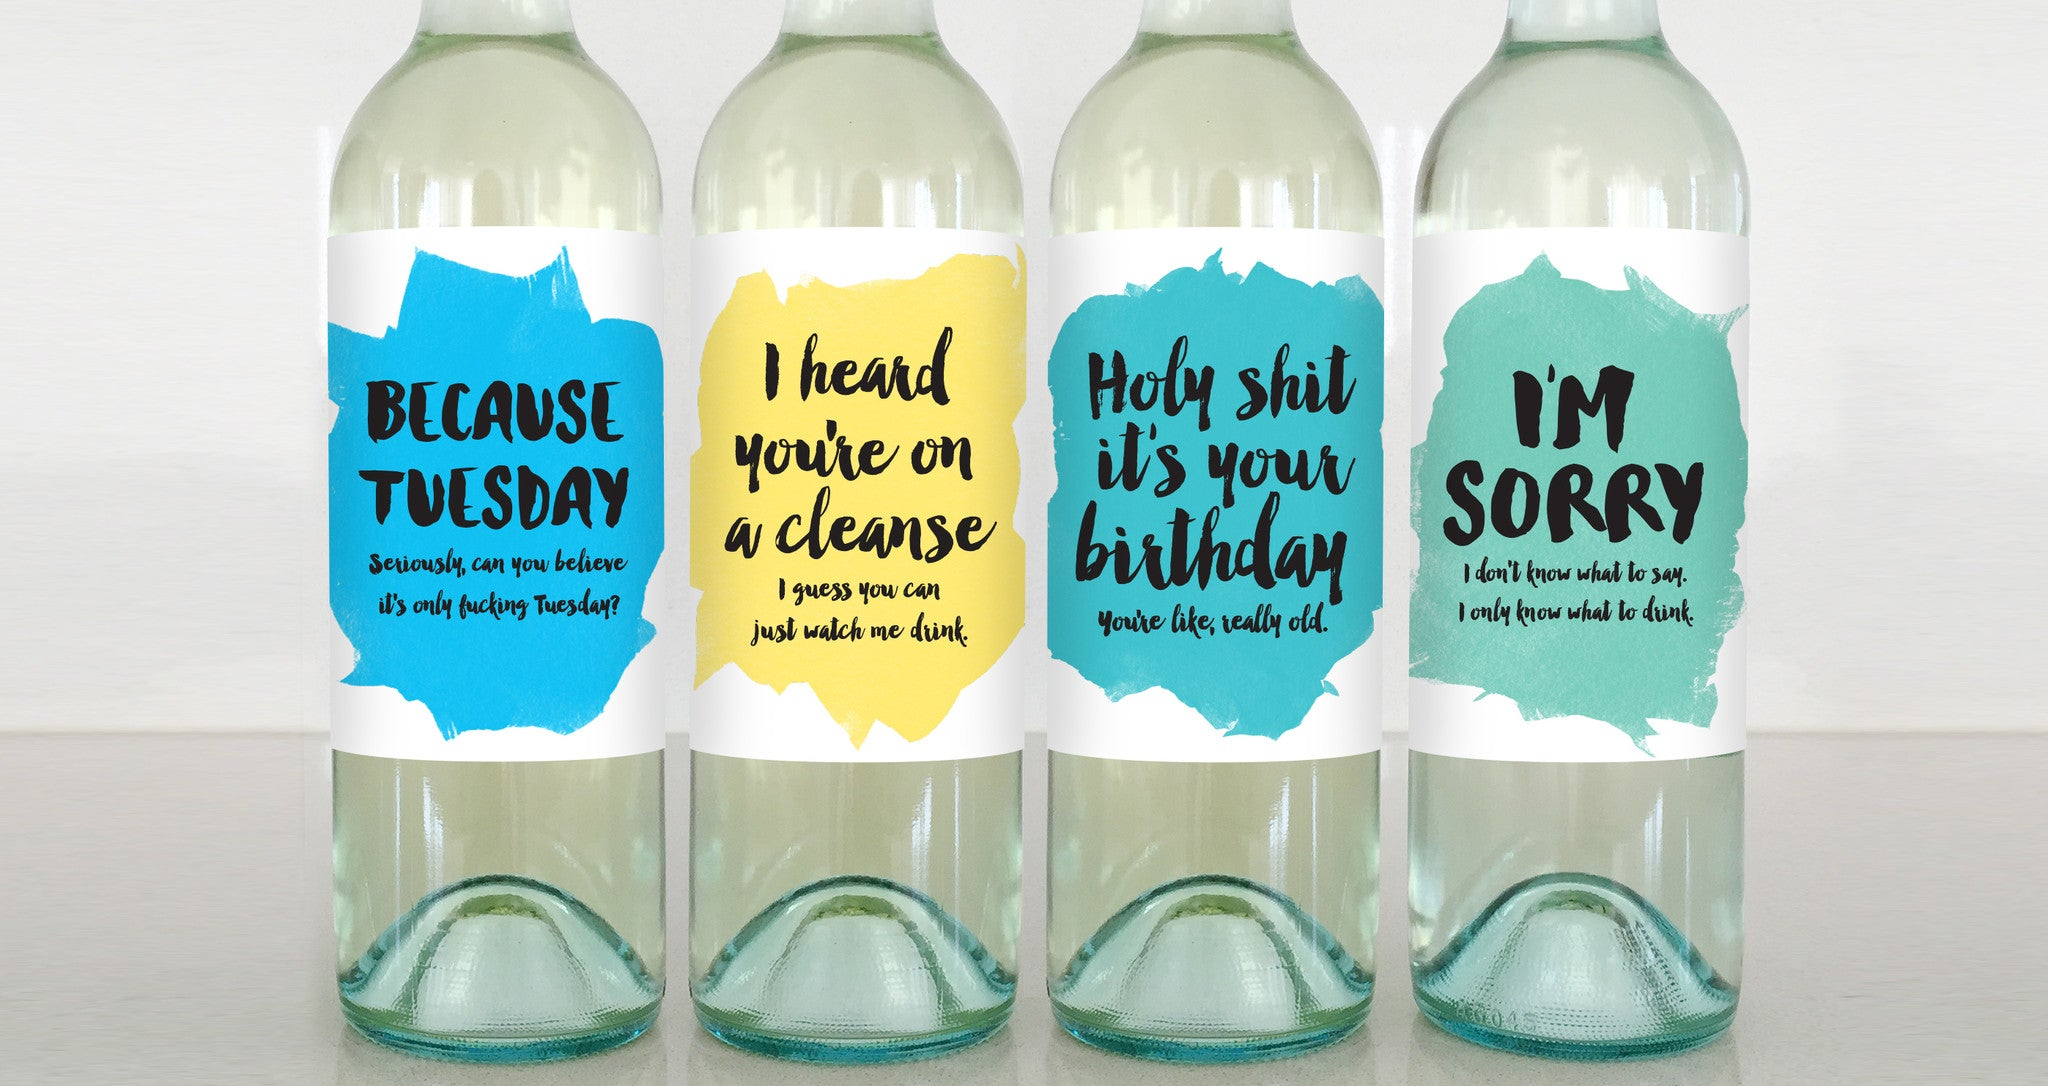 tuesday cleanse birthday sorry wine label greeting card delicate estates